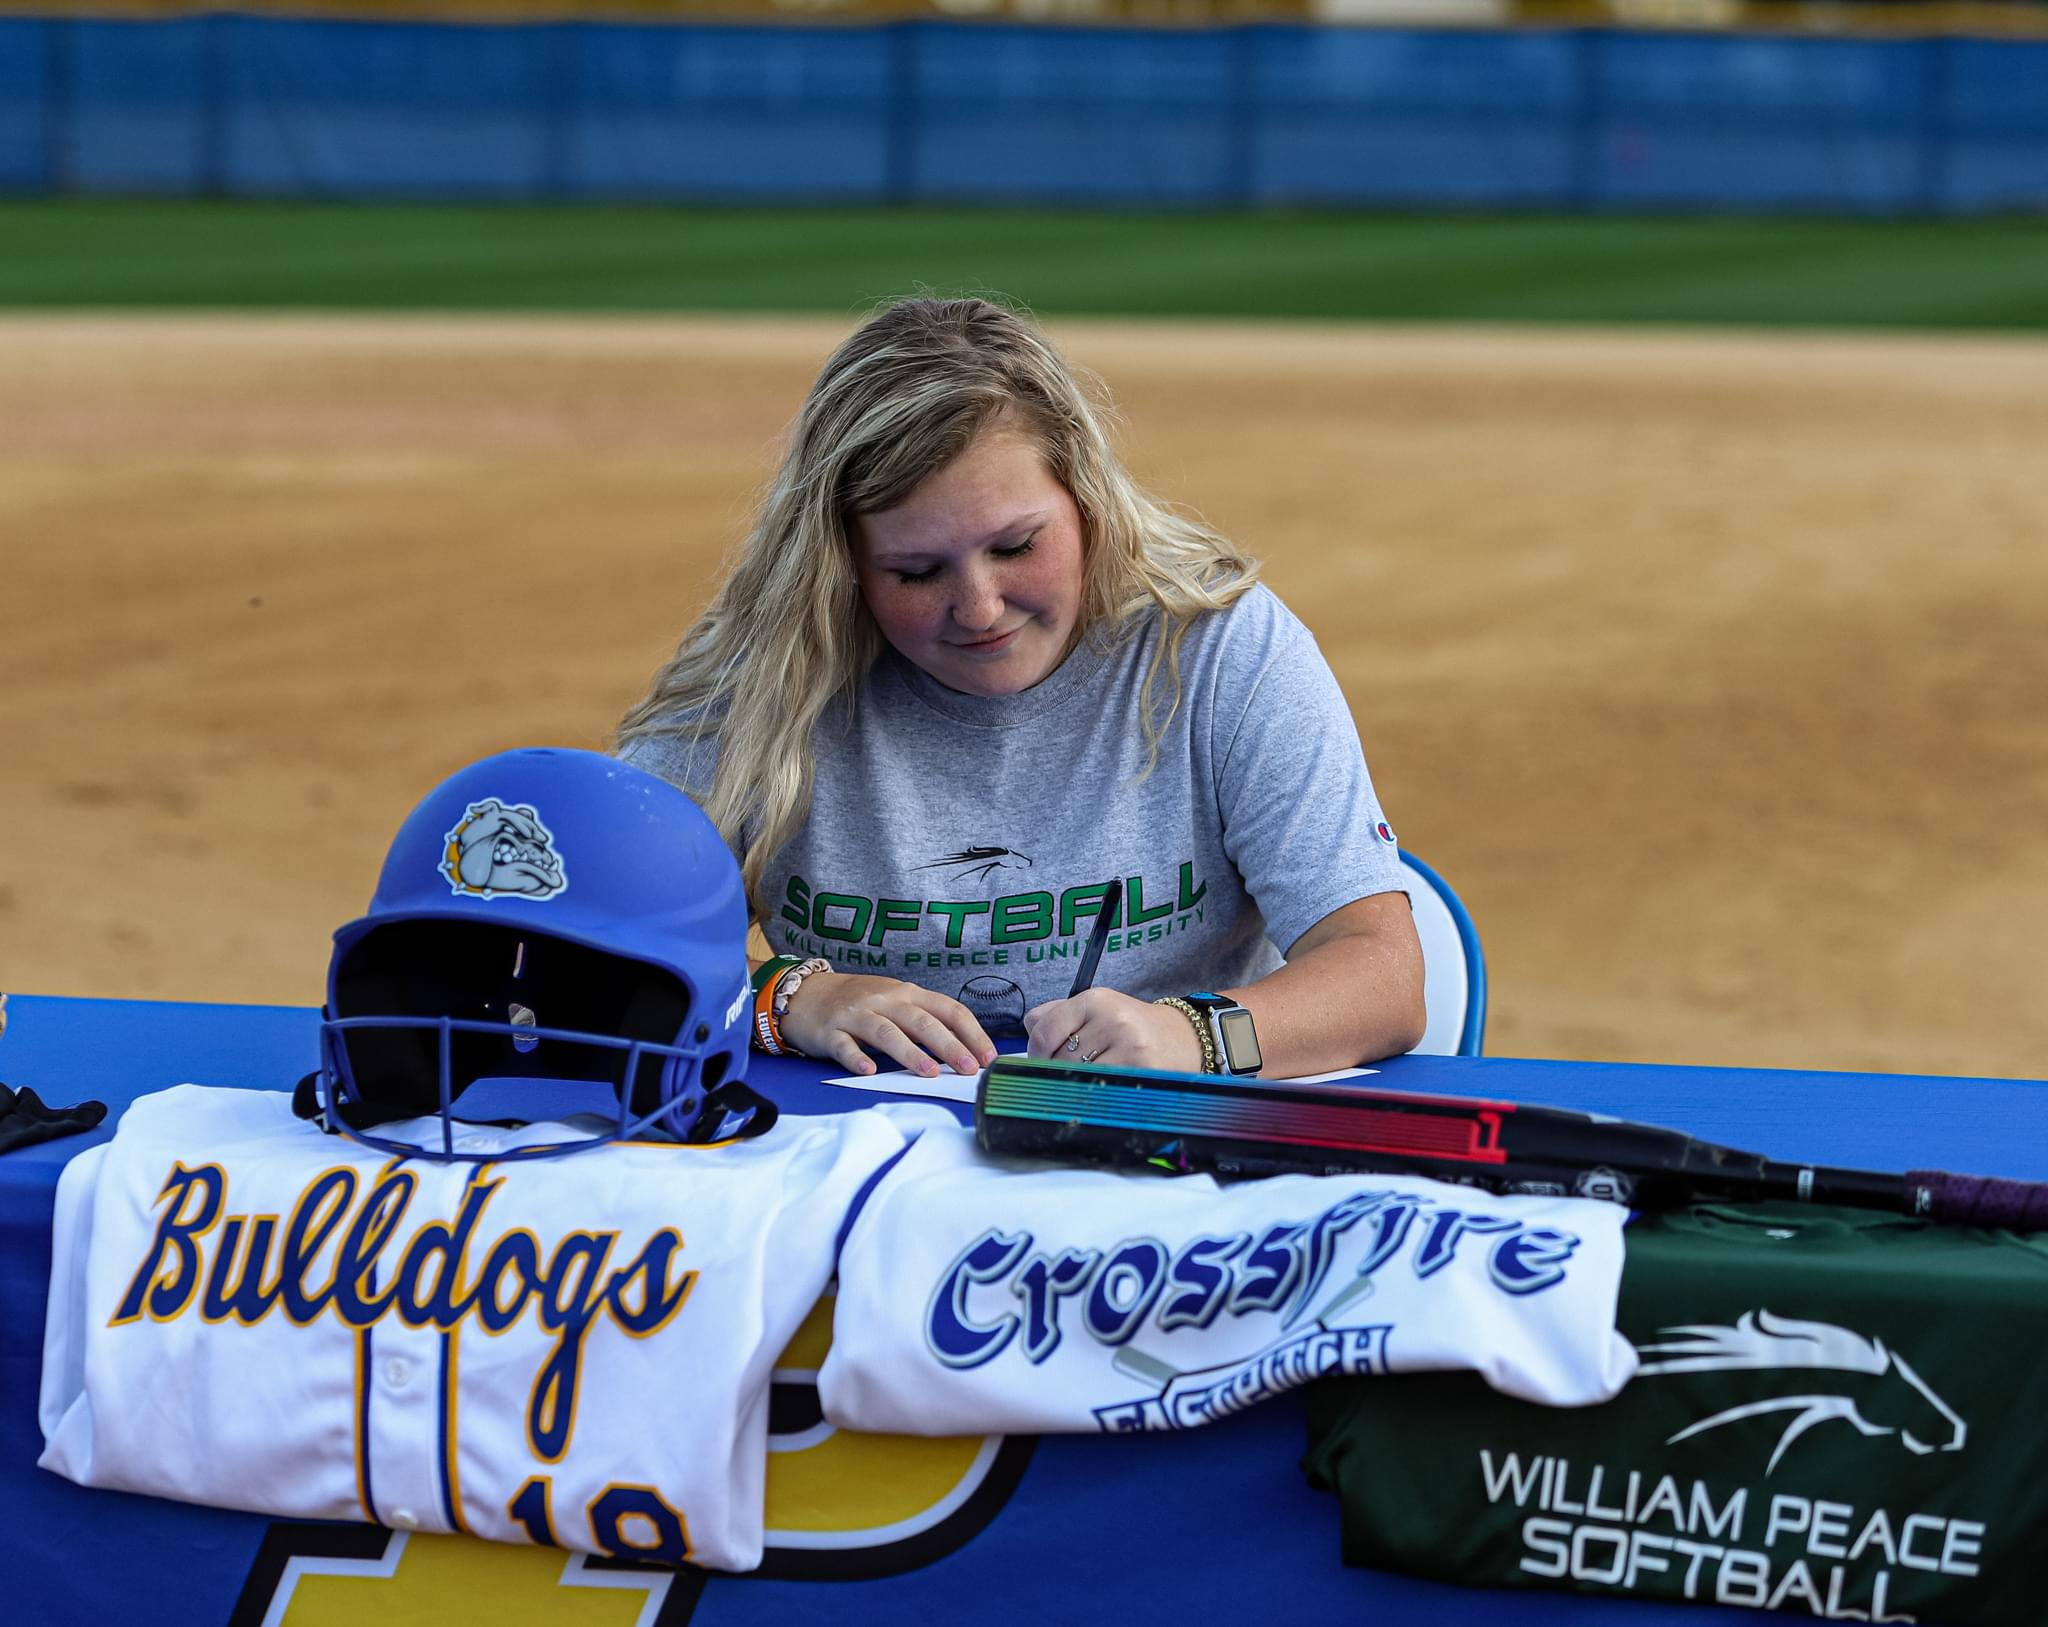 Princeton's Miller Headed To William Peace